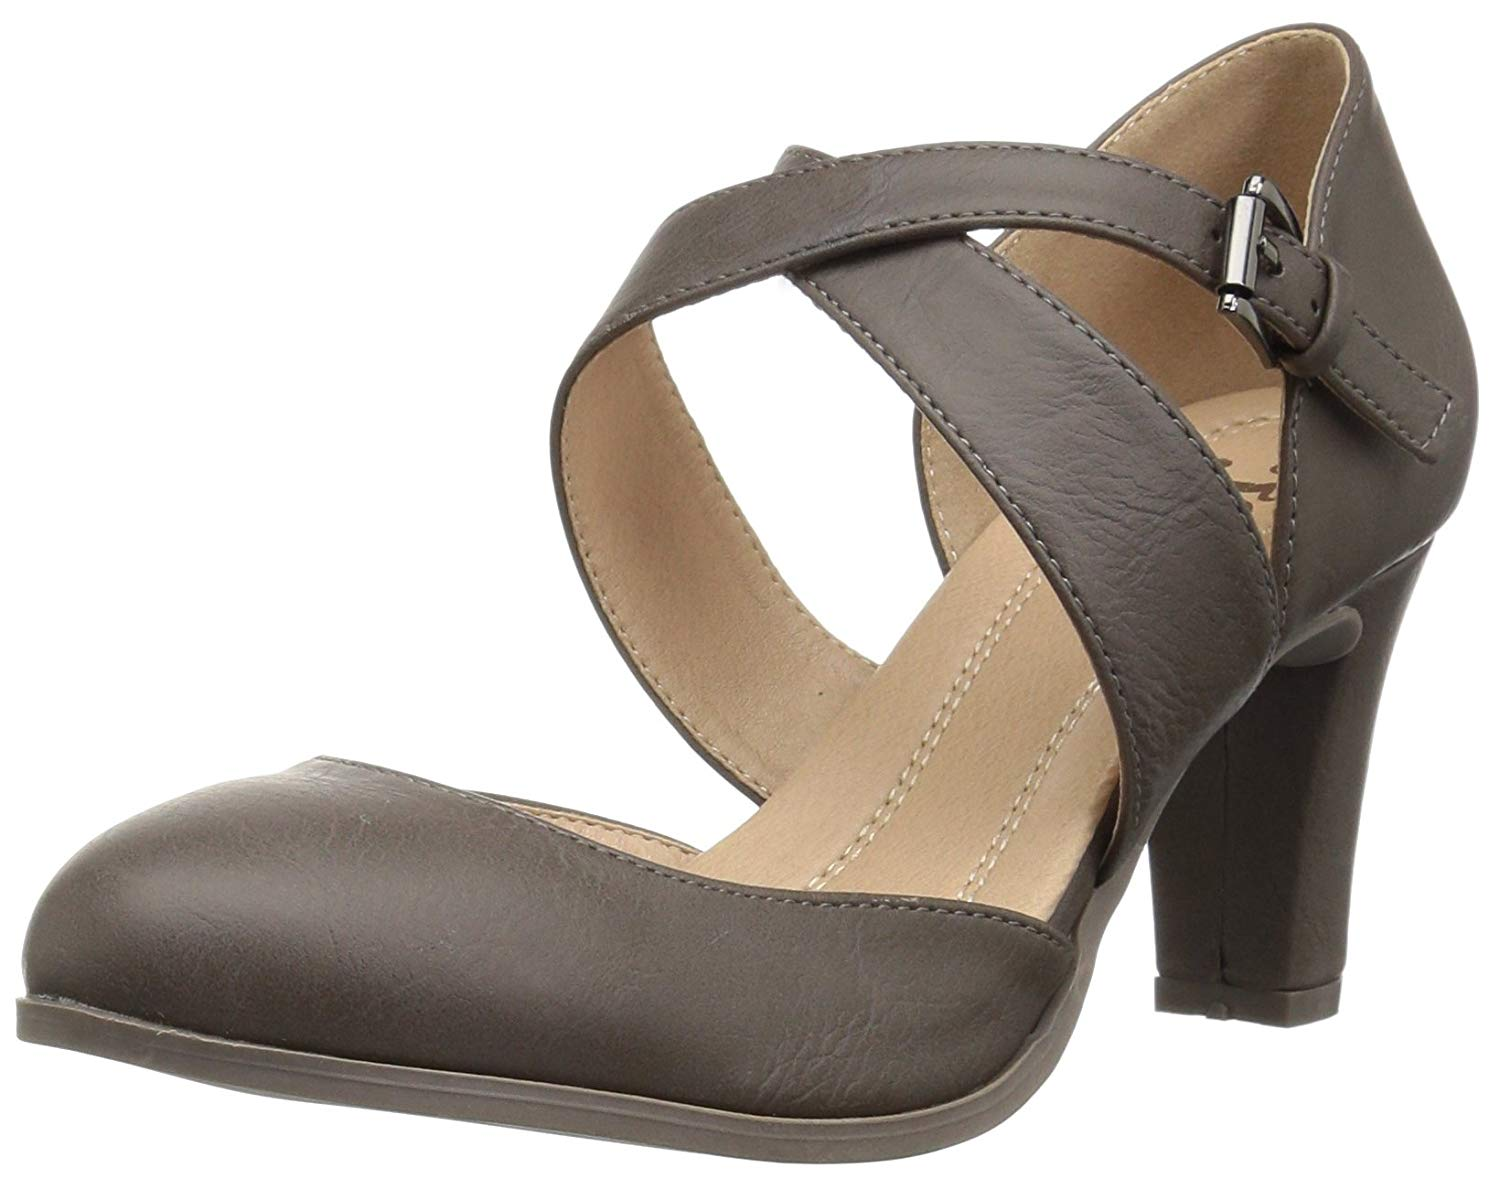 5c04fc30857ed PairMySole: Journee Collection Womens Ainsli Round Toe Ankle Strap ...